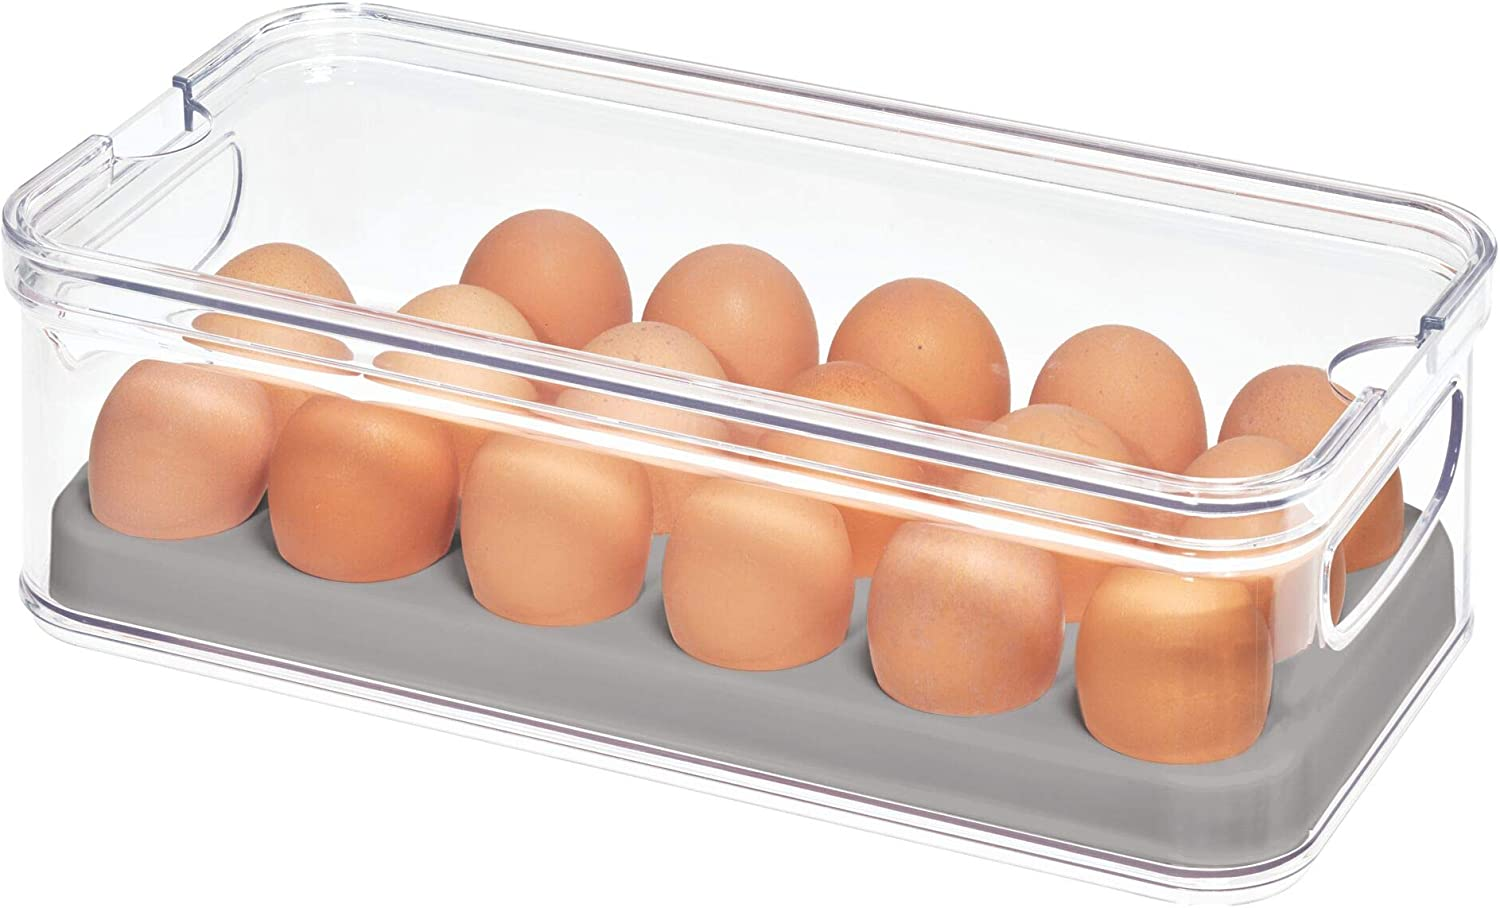 "iDesign Crisp Plastic Refrigerator and Pantry Egg Bin, Modular Stacking Food Storage Box for Freezer, Fridge, Holds up to 18 Eggs, BPA Free, 12.72"" x 6.32"" x 3.88"", Clear and Gray"